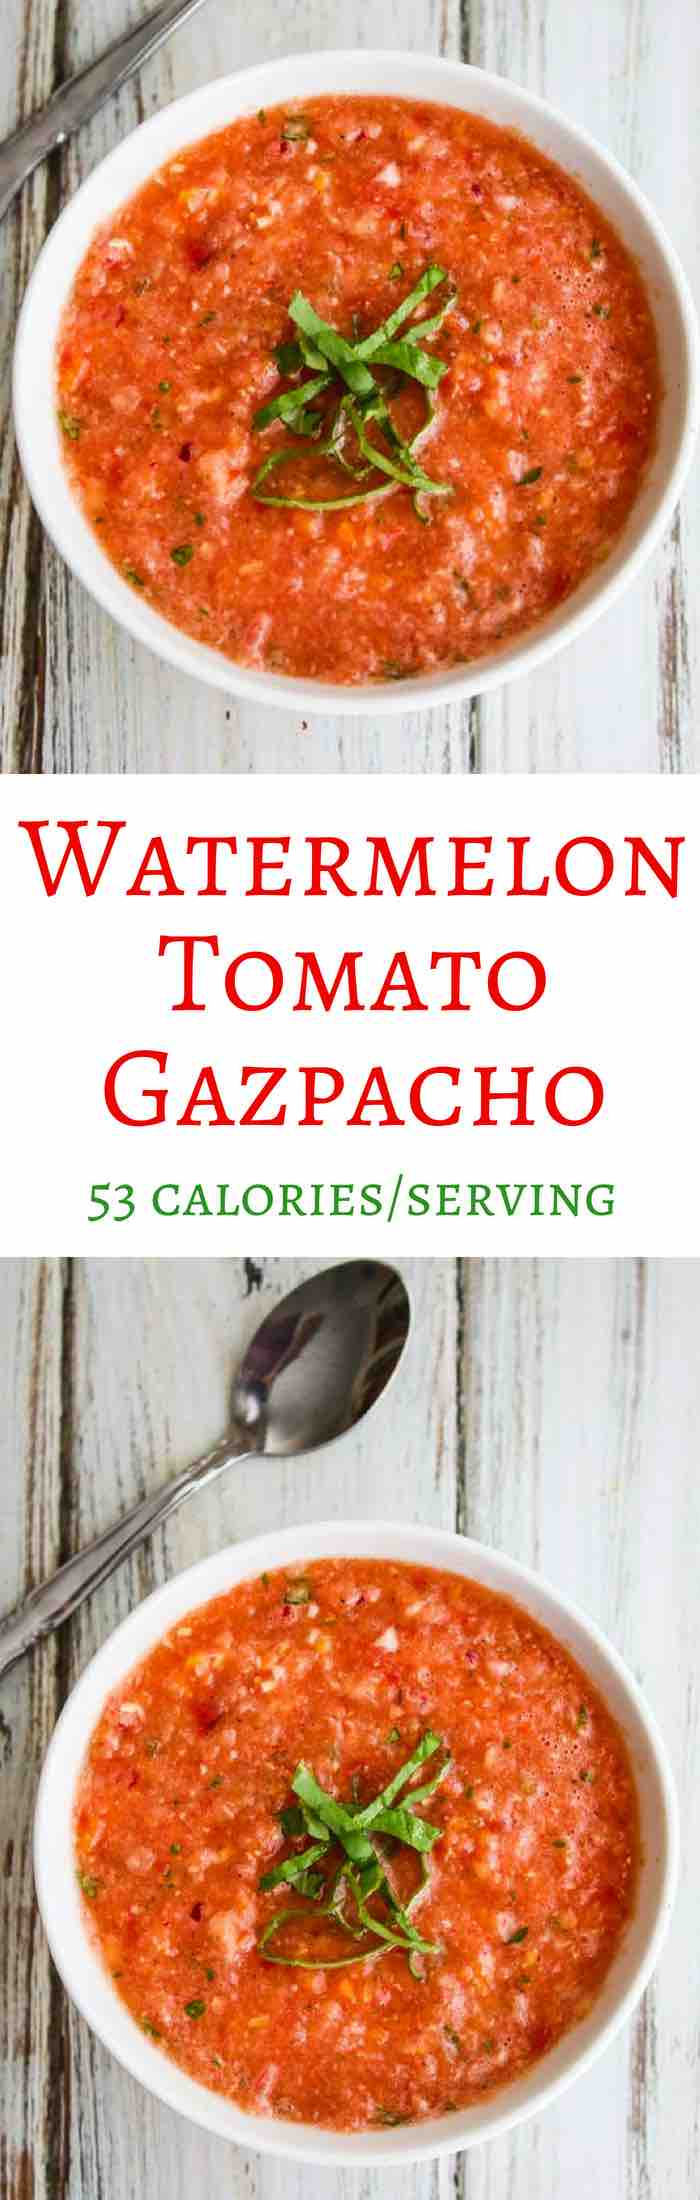 Watermelon Tomato Gazpacho - refreshing, delicious, low calories, no fat summer soup